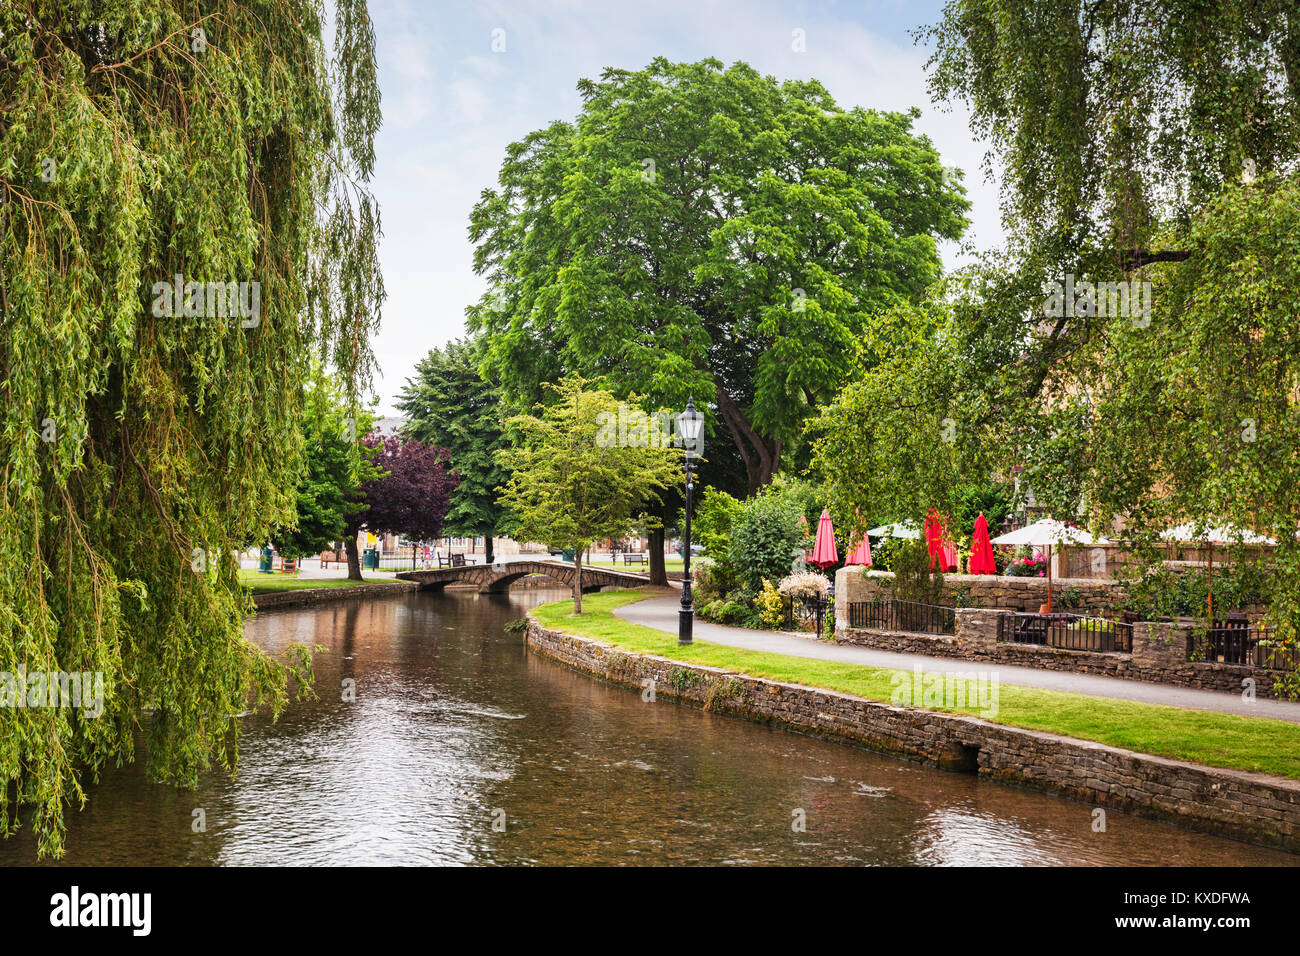 The River Windrush winding through the Cotswold village of Bourton-on-the-Water, Gloucestershire, England - Stock Image